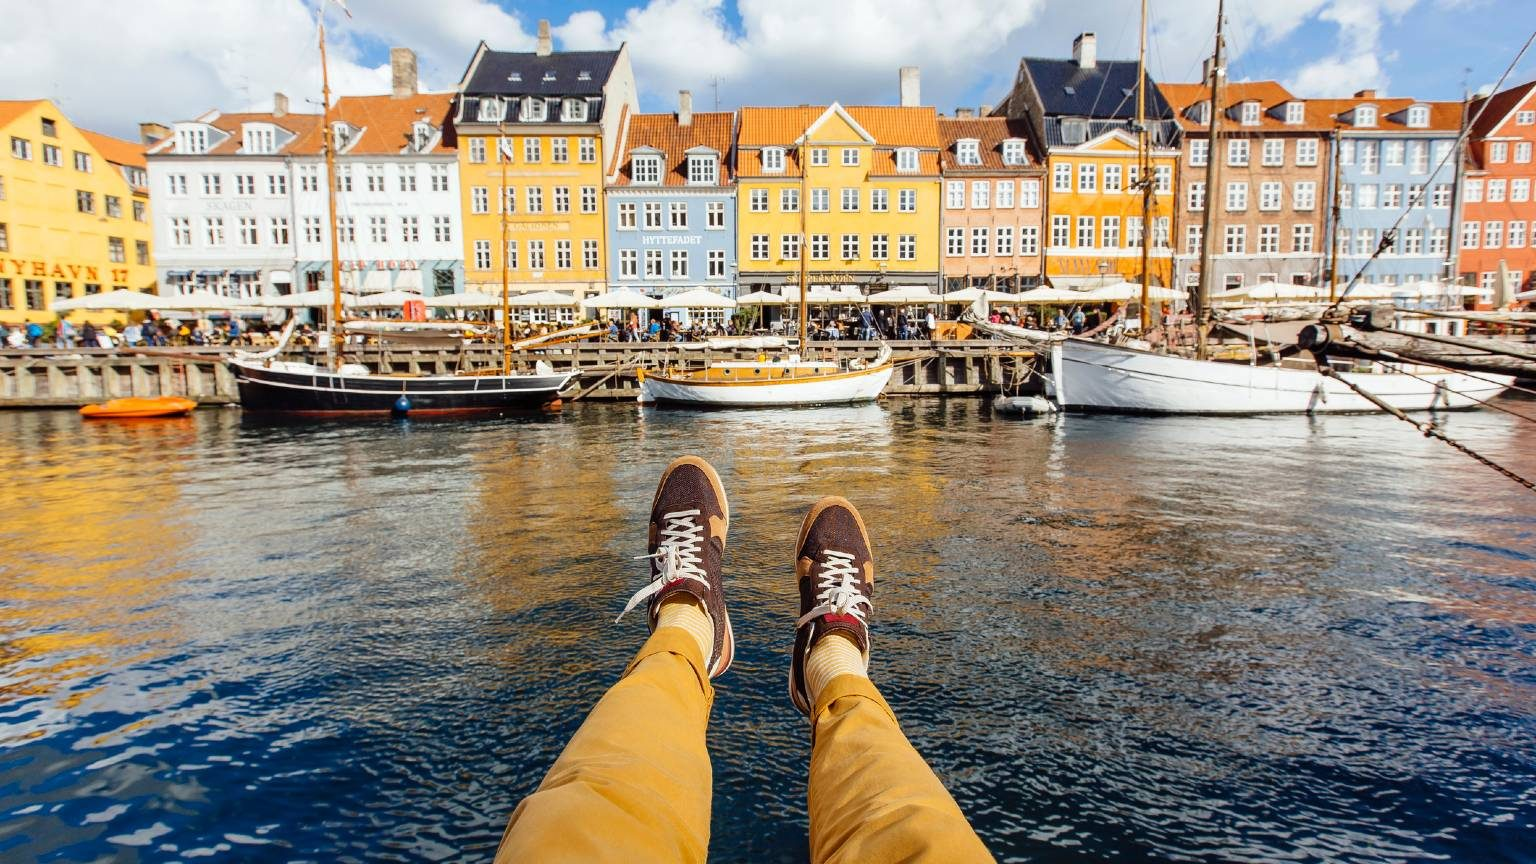 Personal perspective point of view of man sitting at the Nyhavn canal in Copenhagen, Denmark